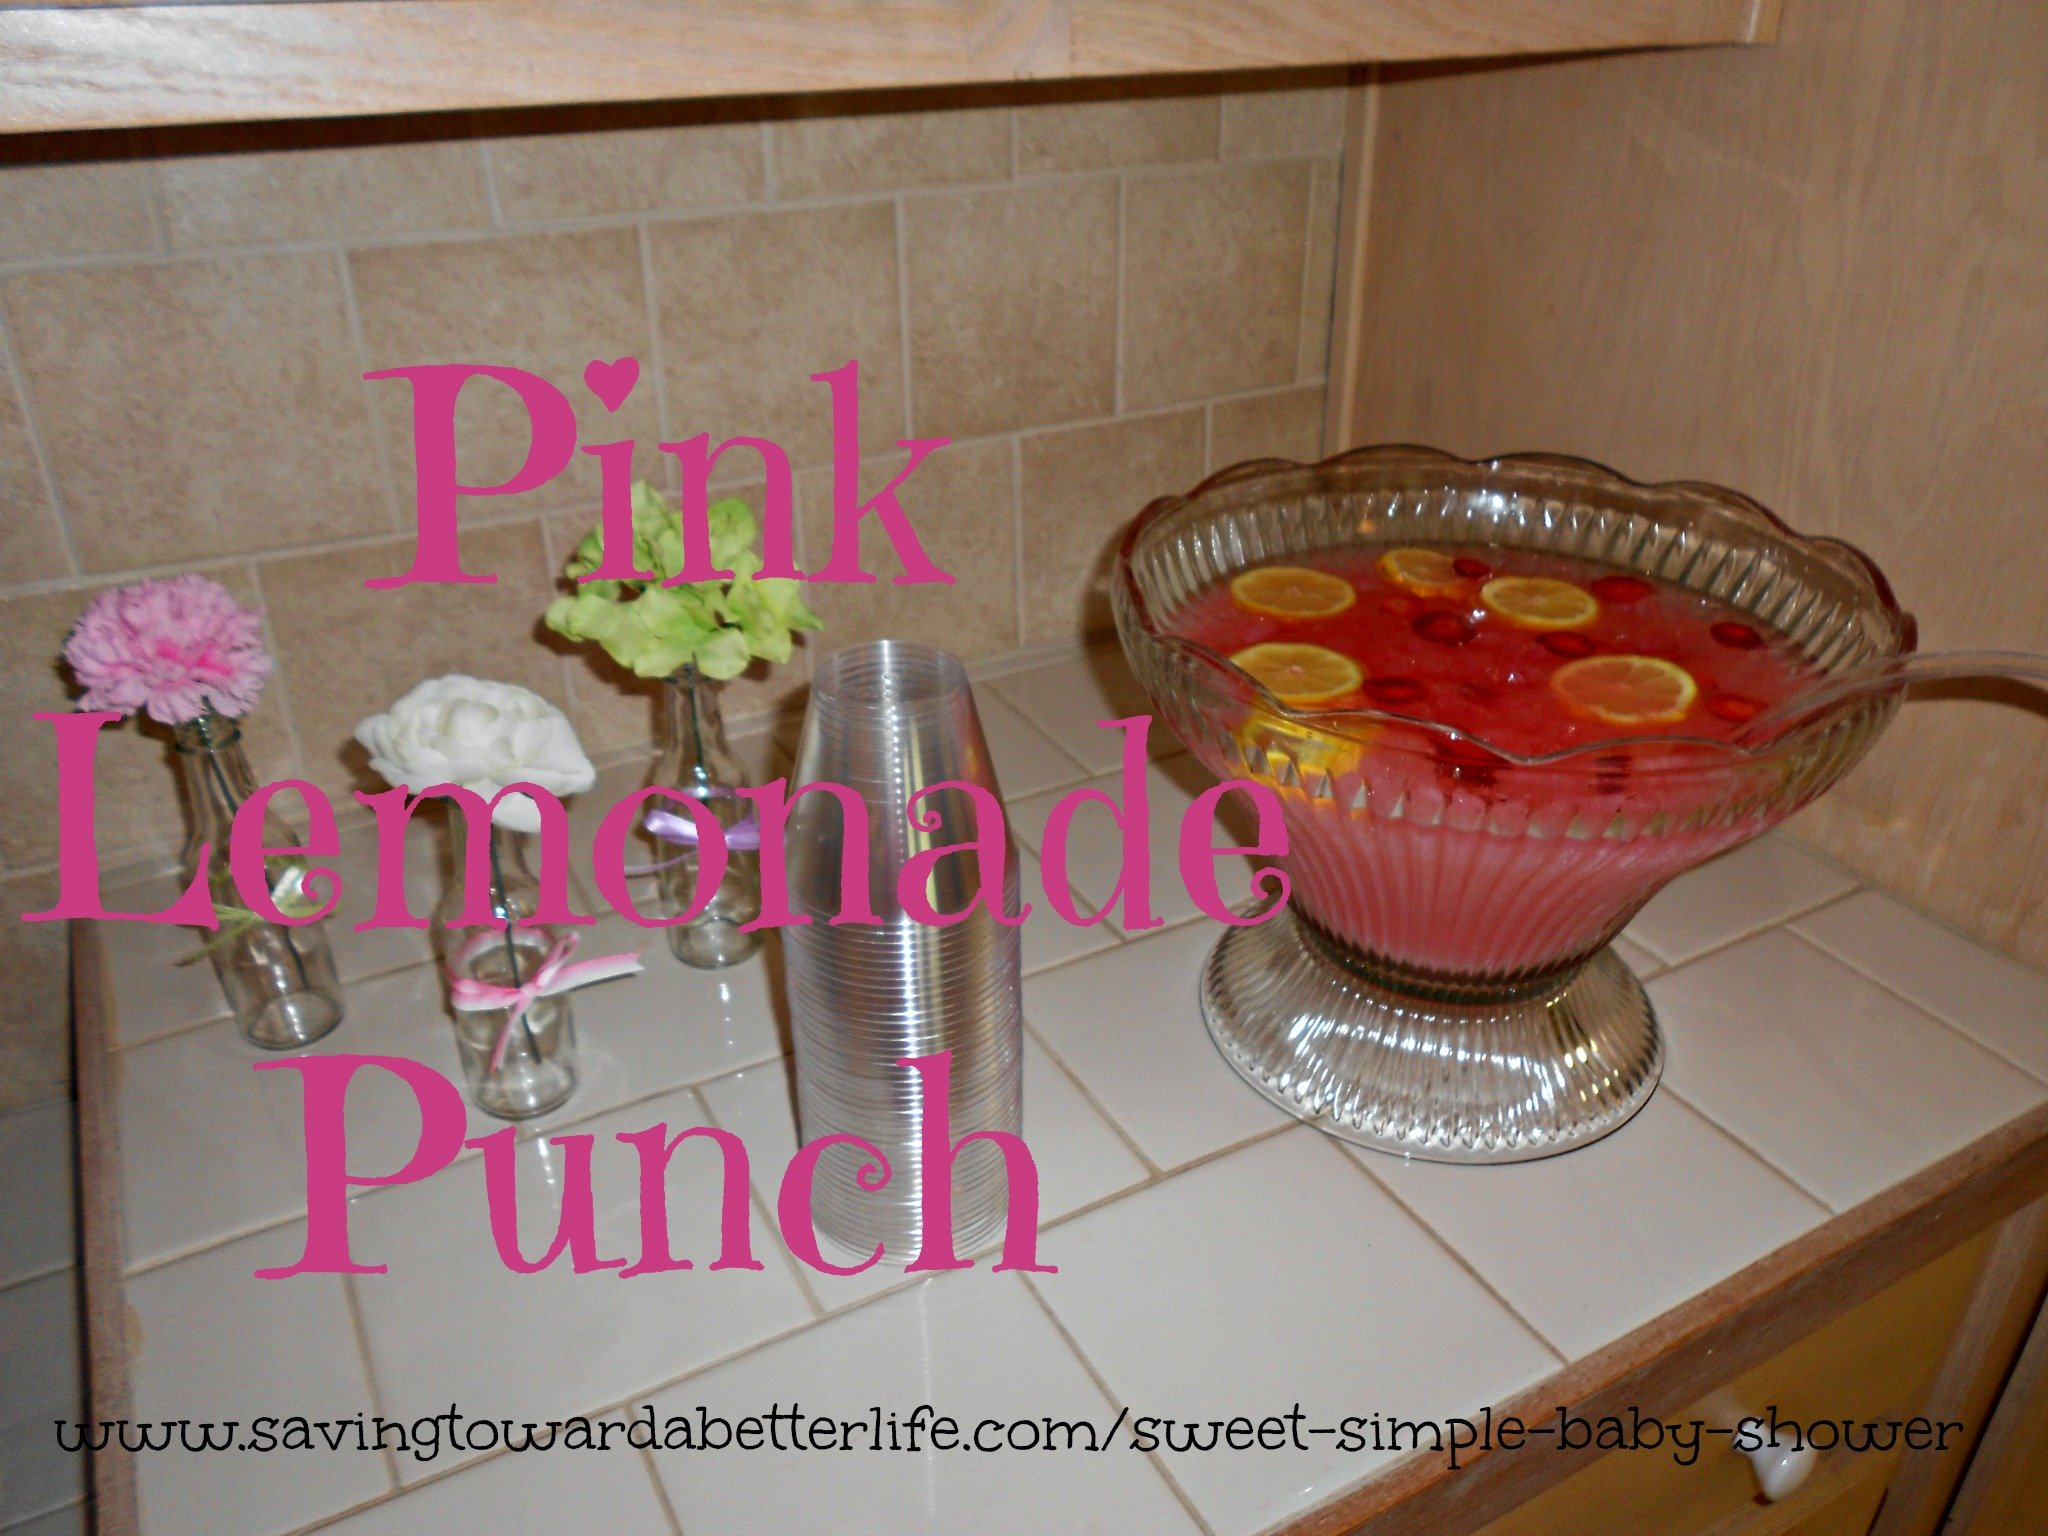 the pink lemonade punch went over very well at our shower and it was